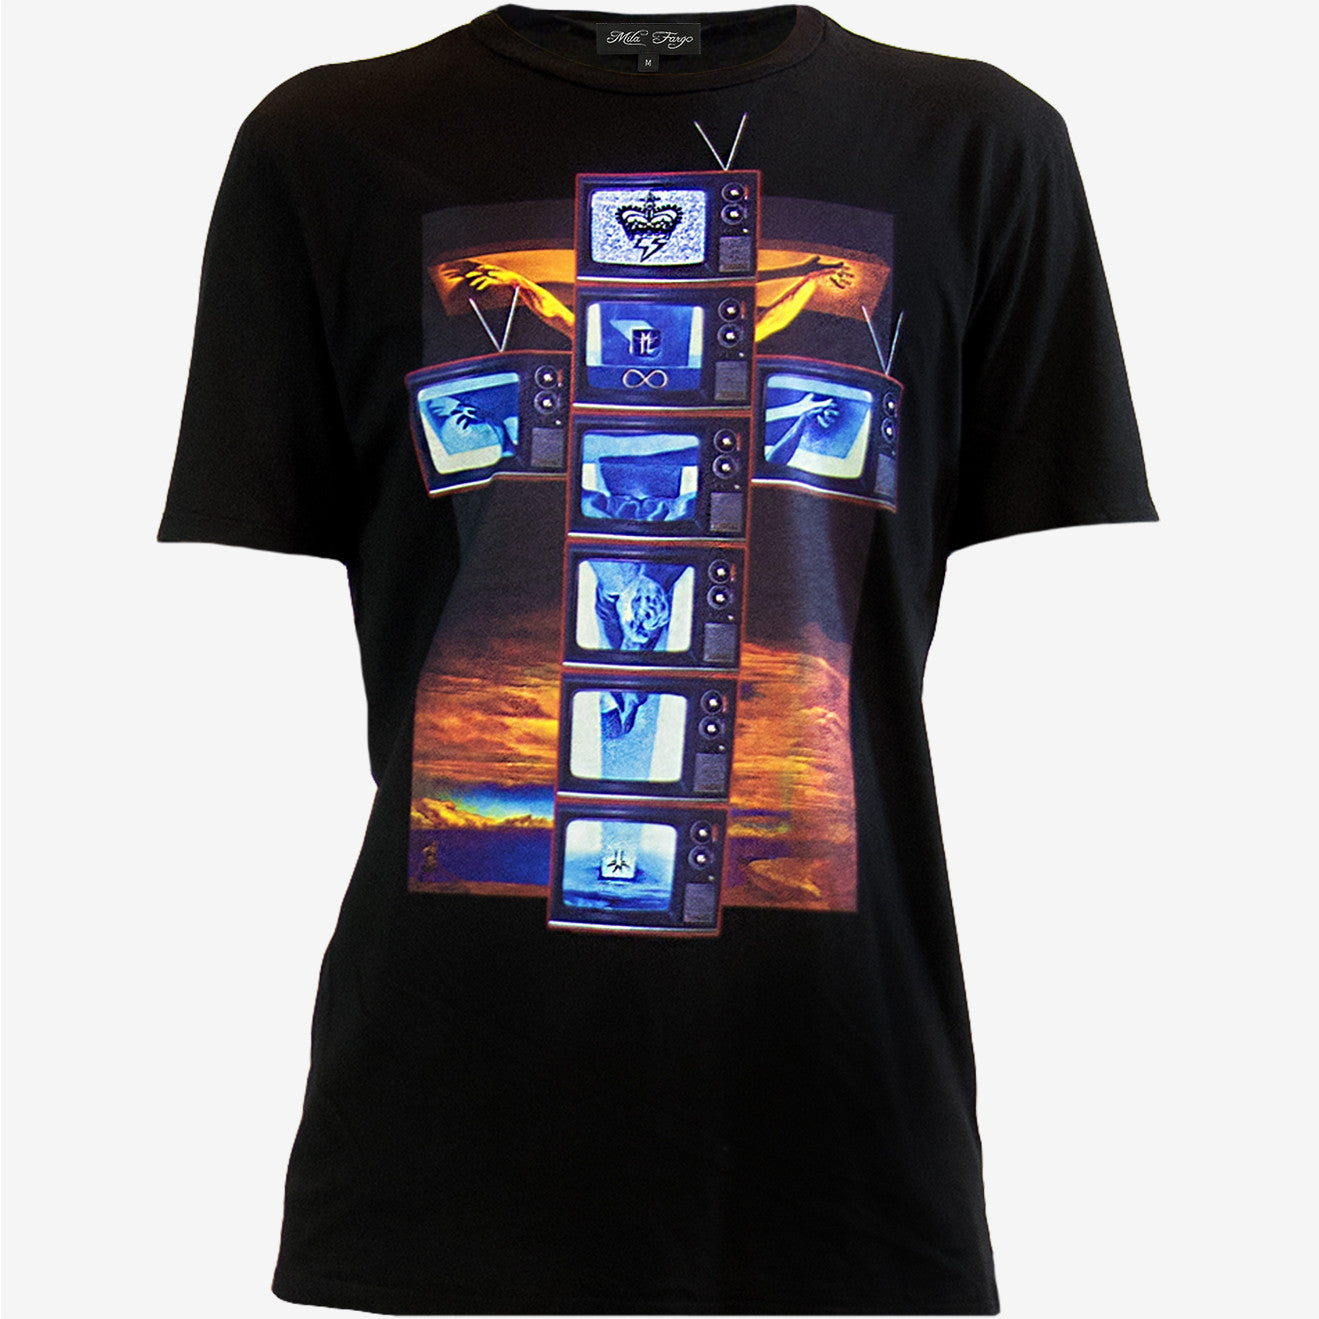 MODERN CRUCIFIXION TECHNICOLOR TV T-SHIRT | Black ( LE ) Mila Fargo T shirt